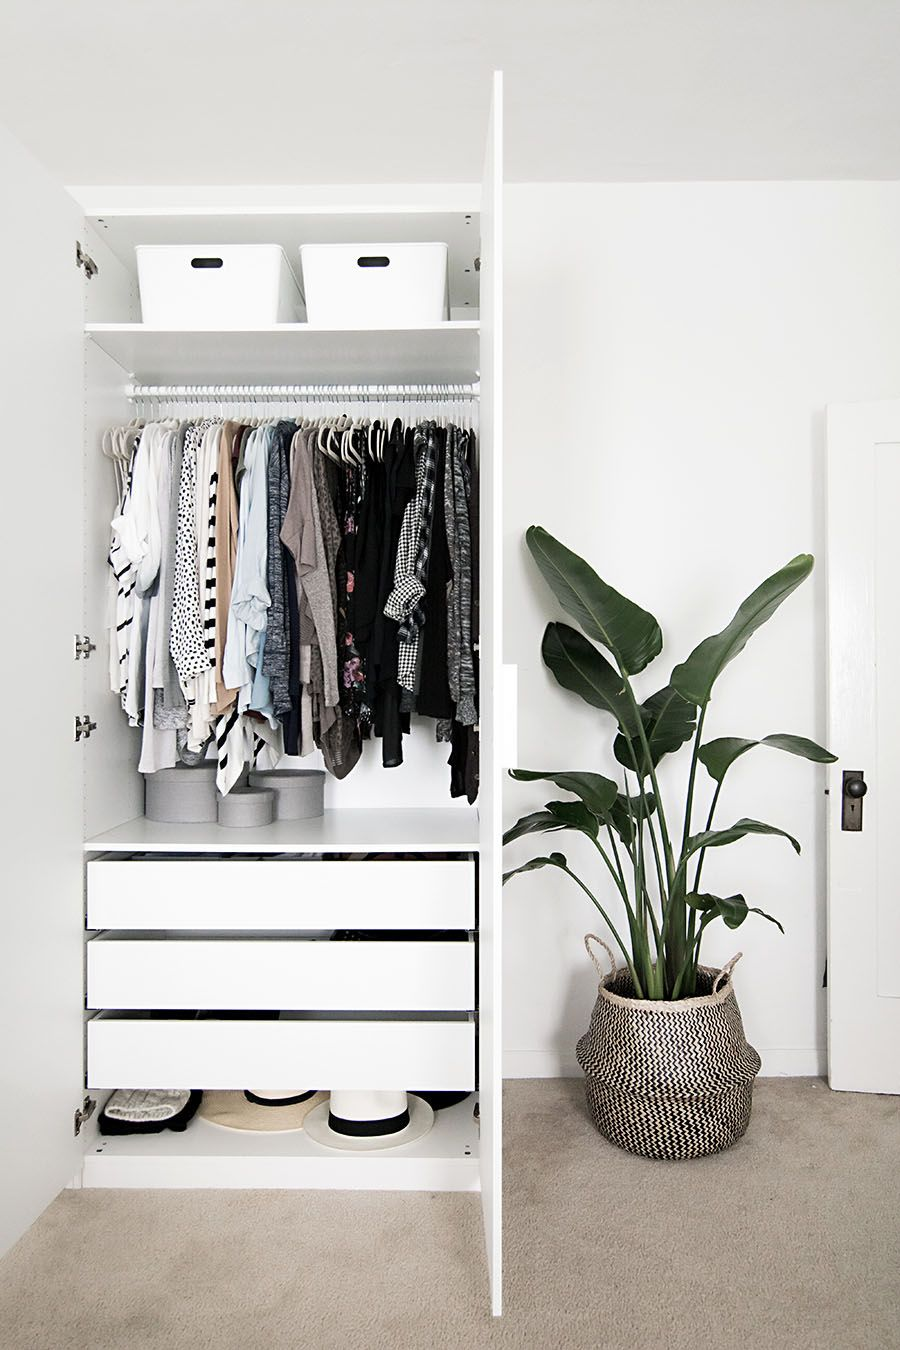 Hideaway Storage Ideas For Small Spaces Small Bedroom Storage